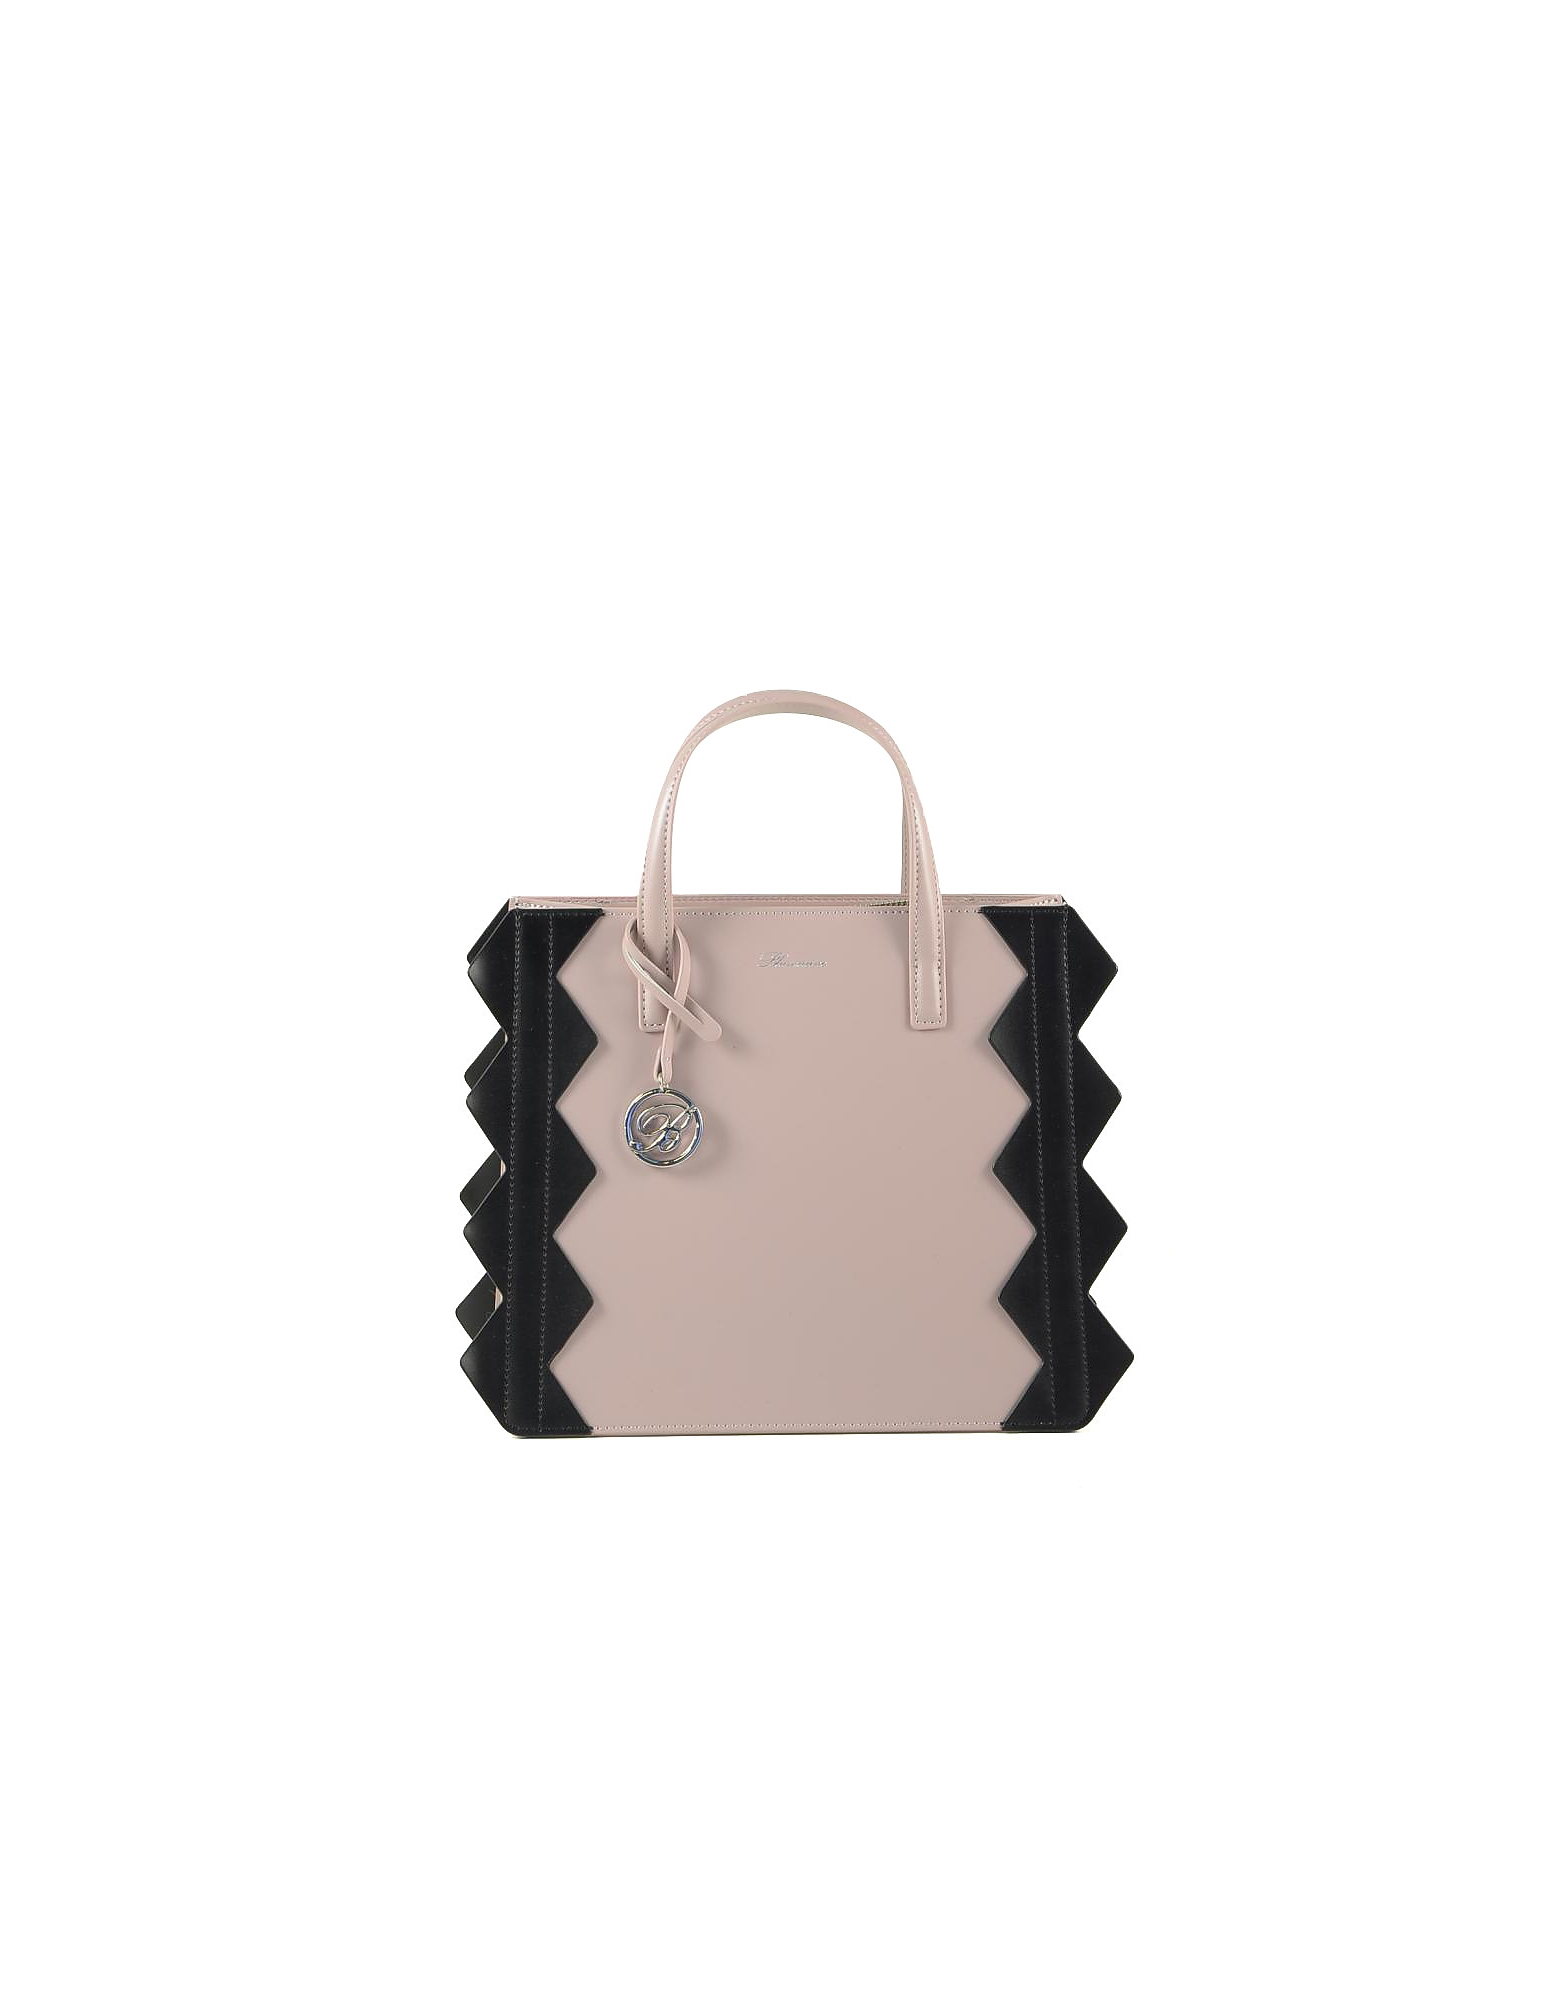 Blumarine Designer Handbags, Small Color Block Zig-Zag Tote Bag